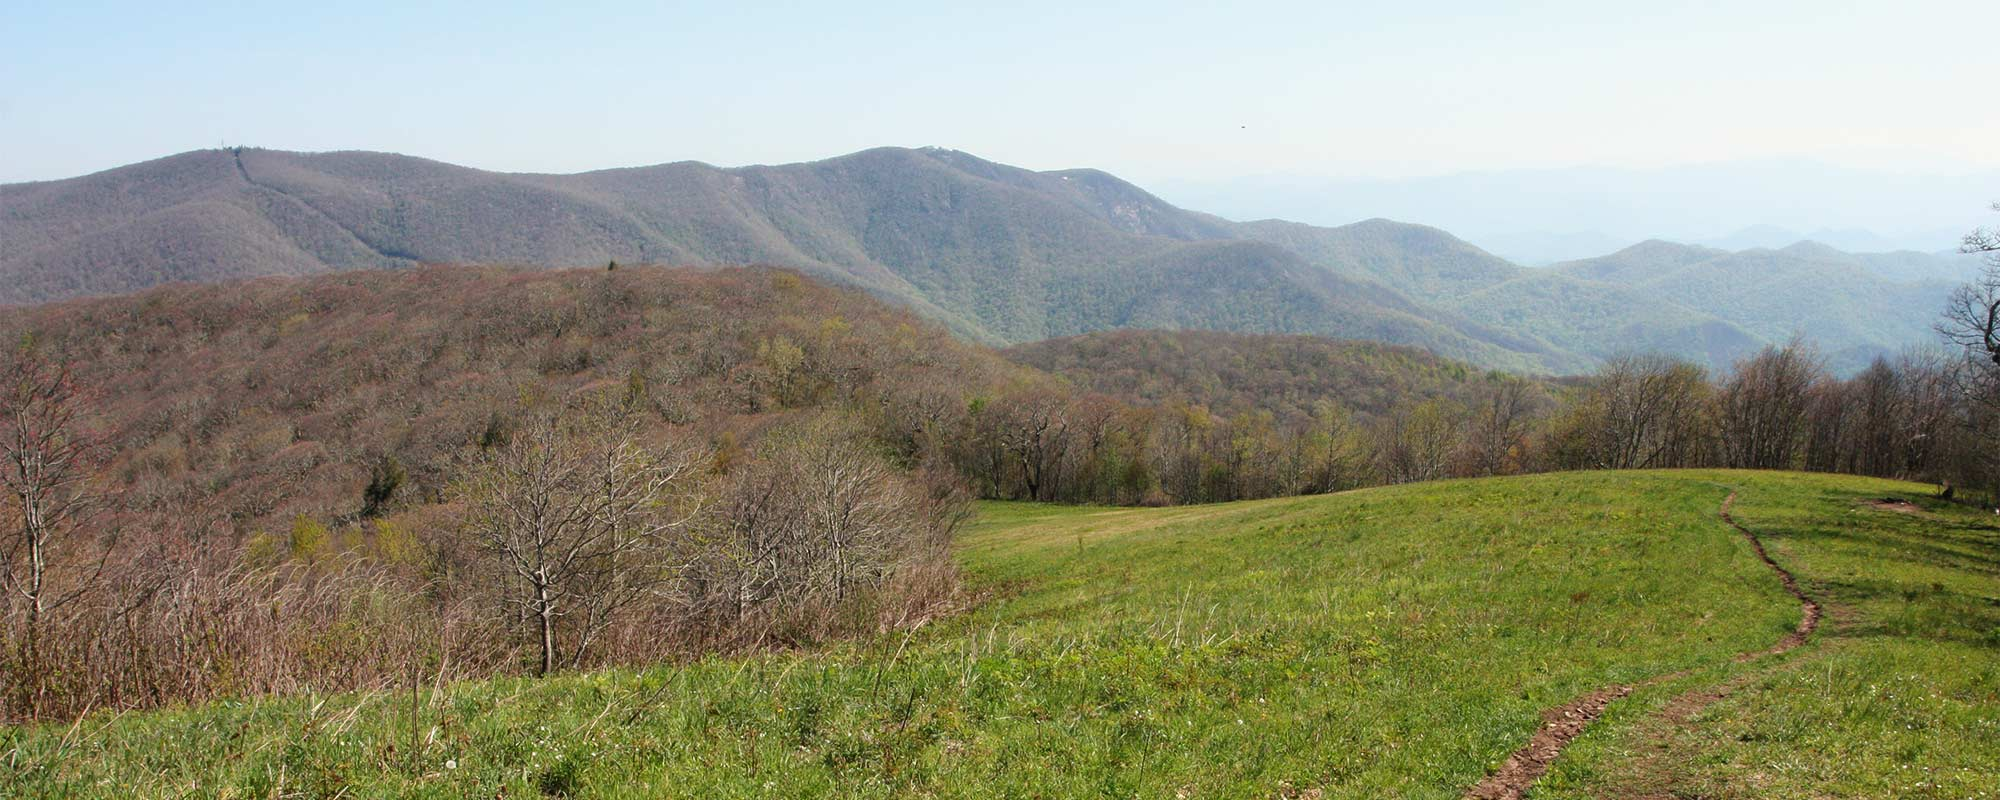 Siler Bald via Wayah Gap